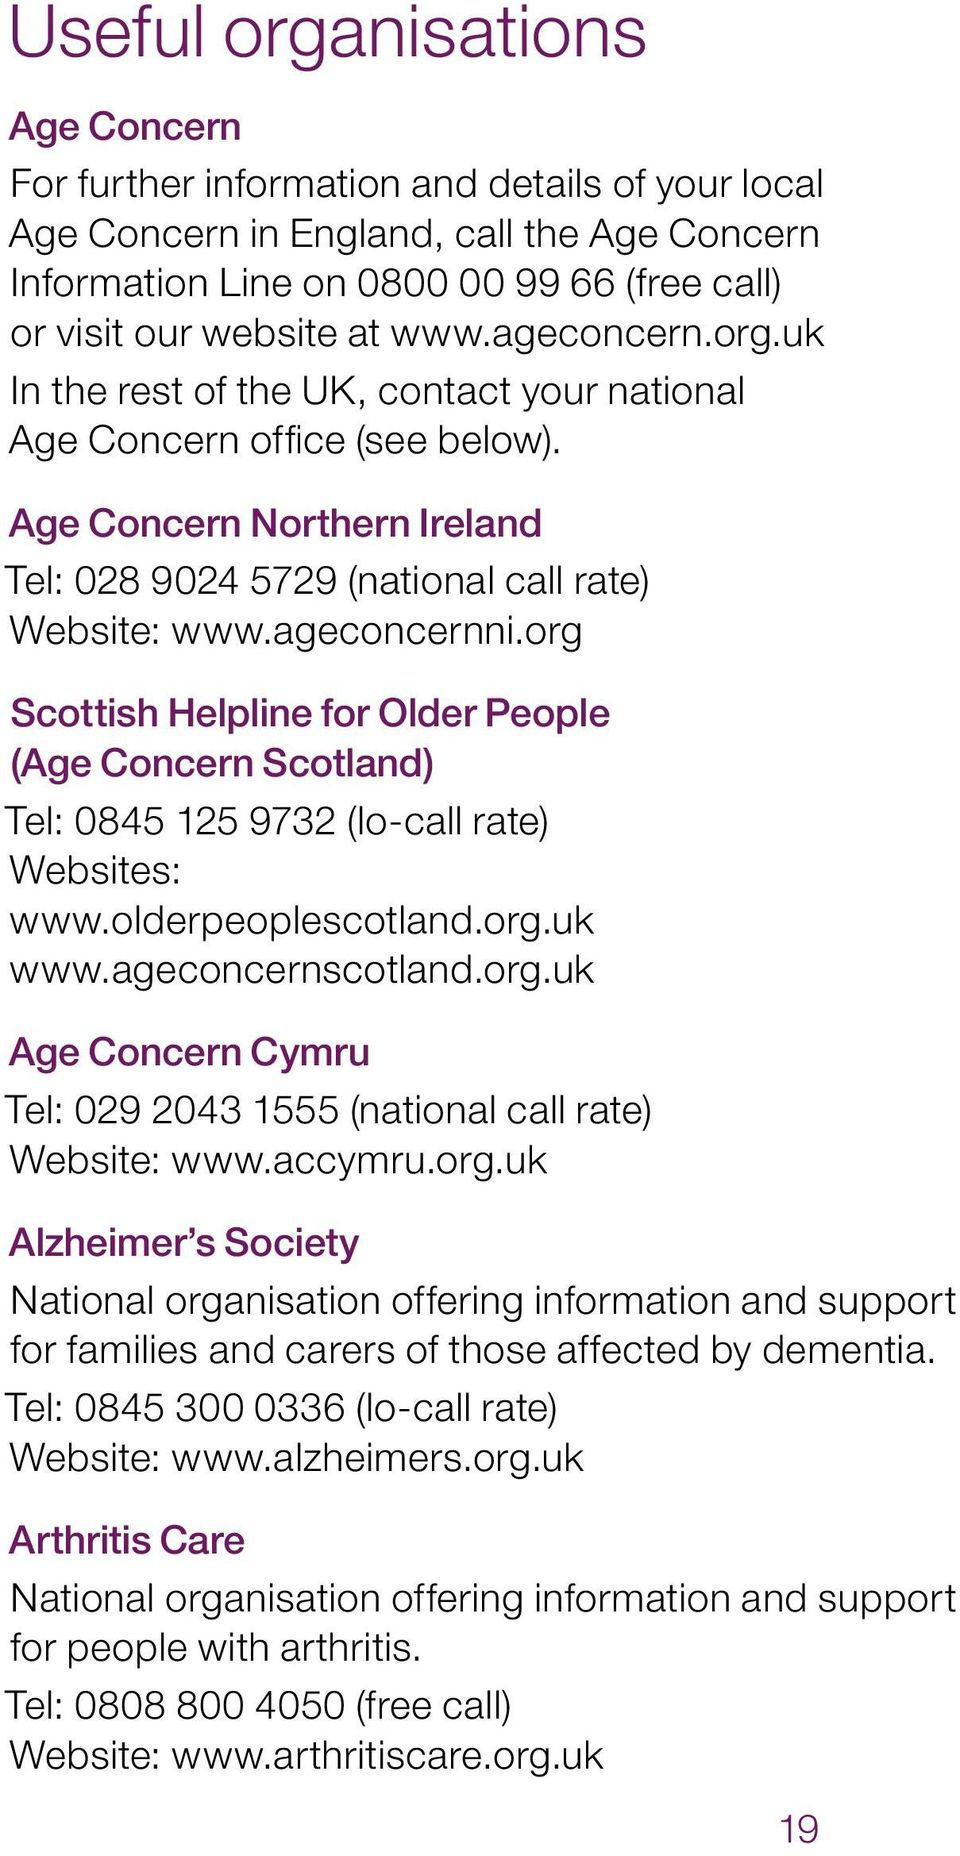 org Scottish Helpline for Older People (Age Concern Scotland) Tel: 0845 125 9732 (lo call rate) Websites: www.olderpeoplescotland.org.uk www.ageconcernscotland.org.uk Age Concern Cymru Tel: 029 2043 1555 (national call rate) Website: www.